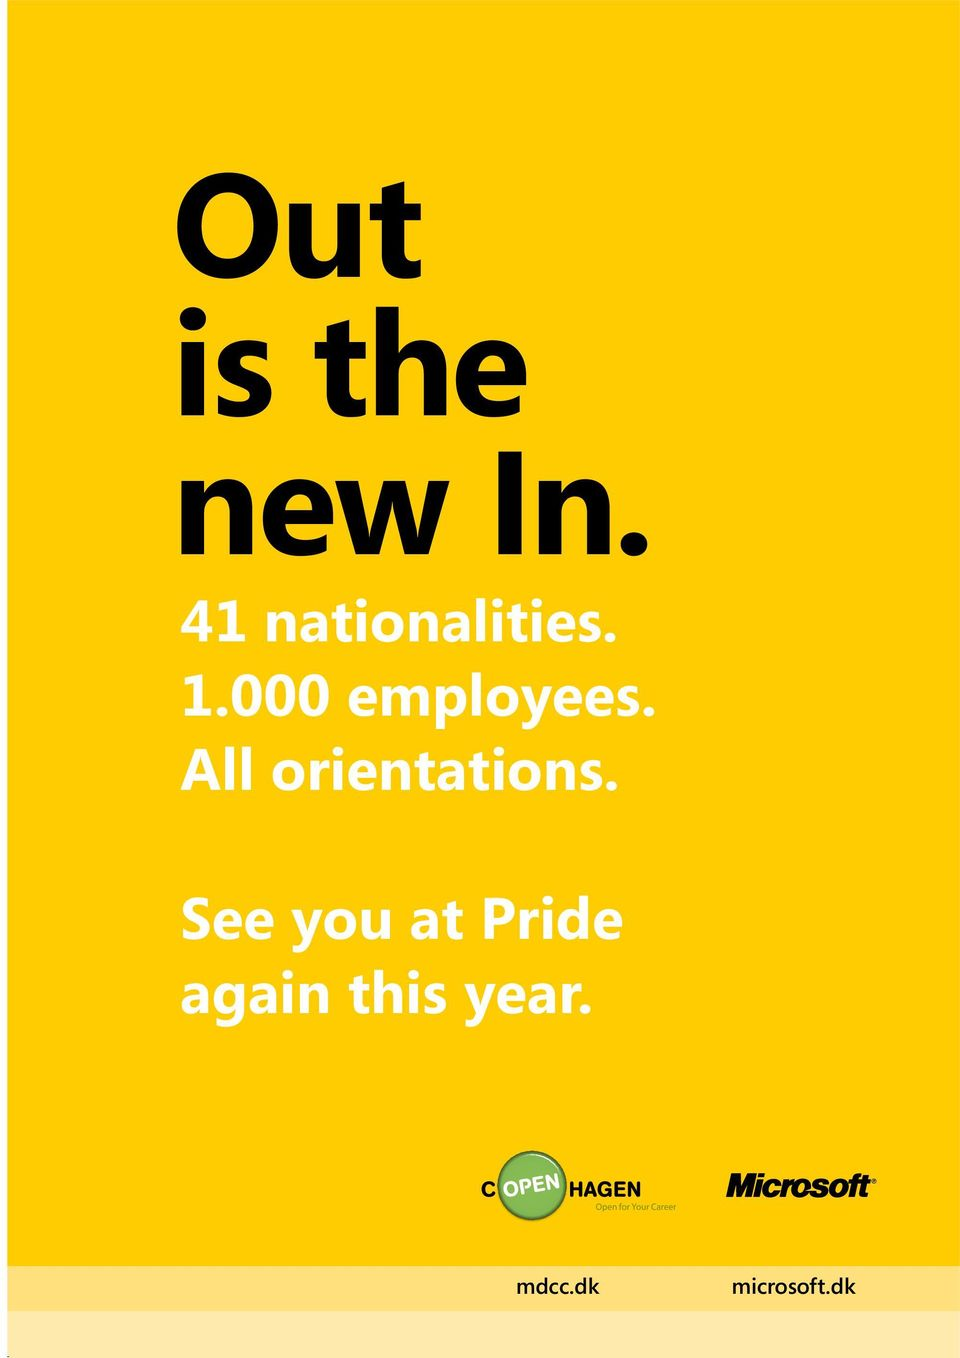 000 employees. All orientations.